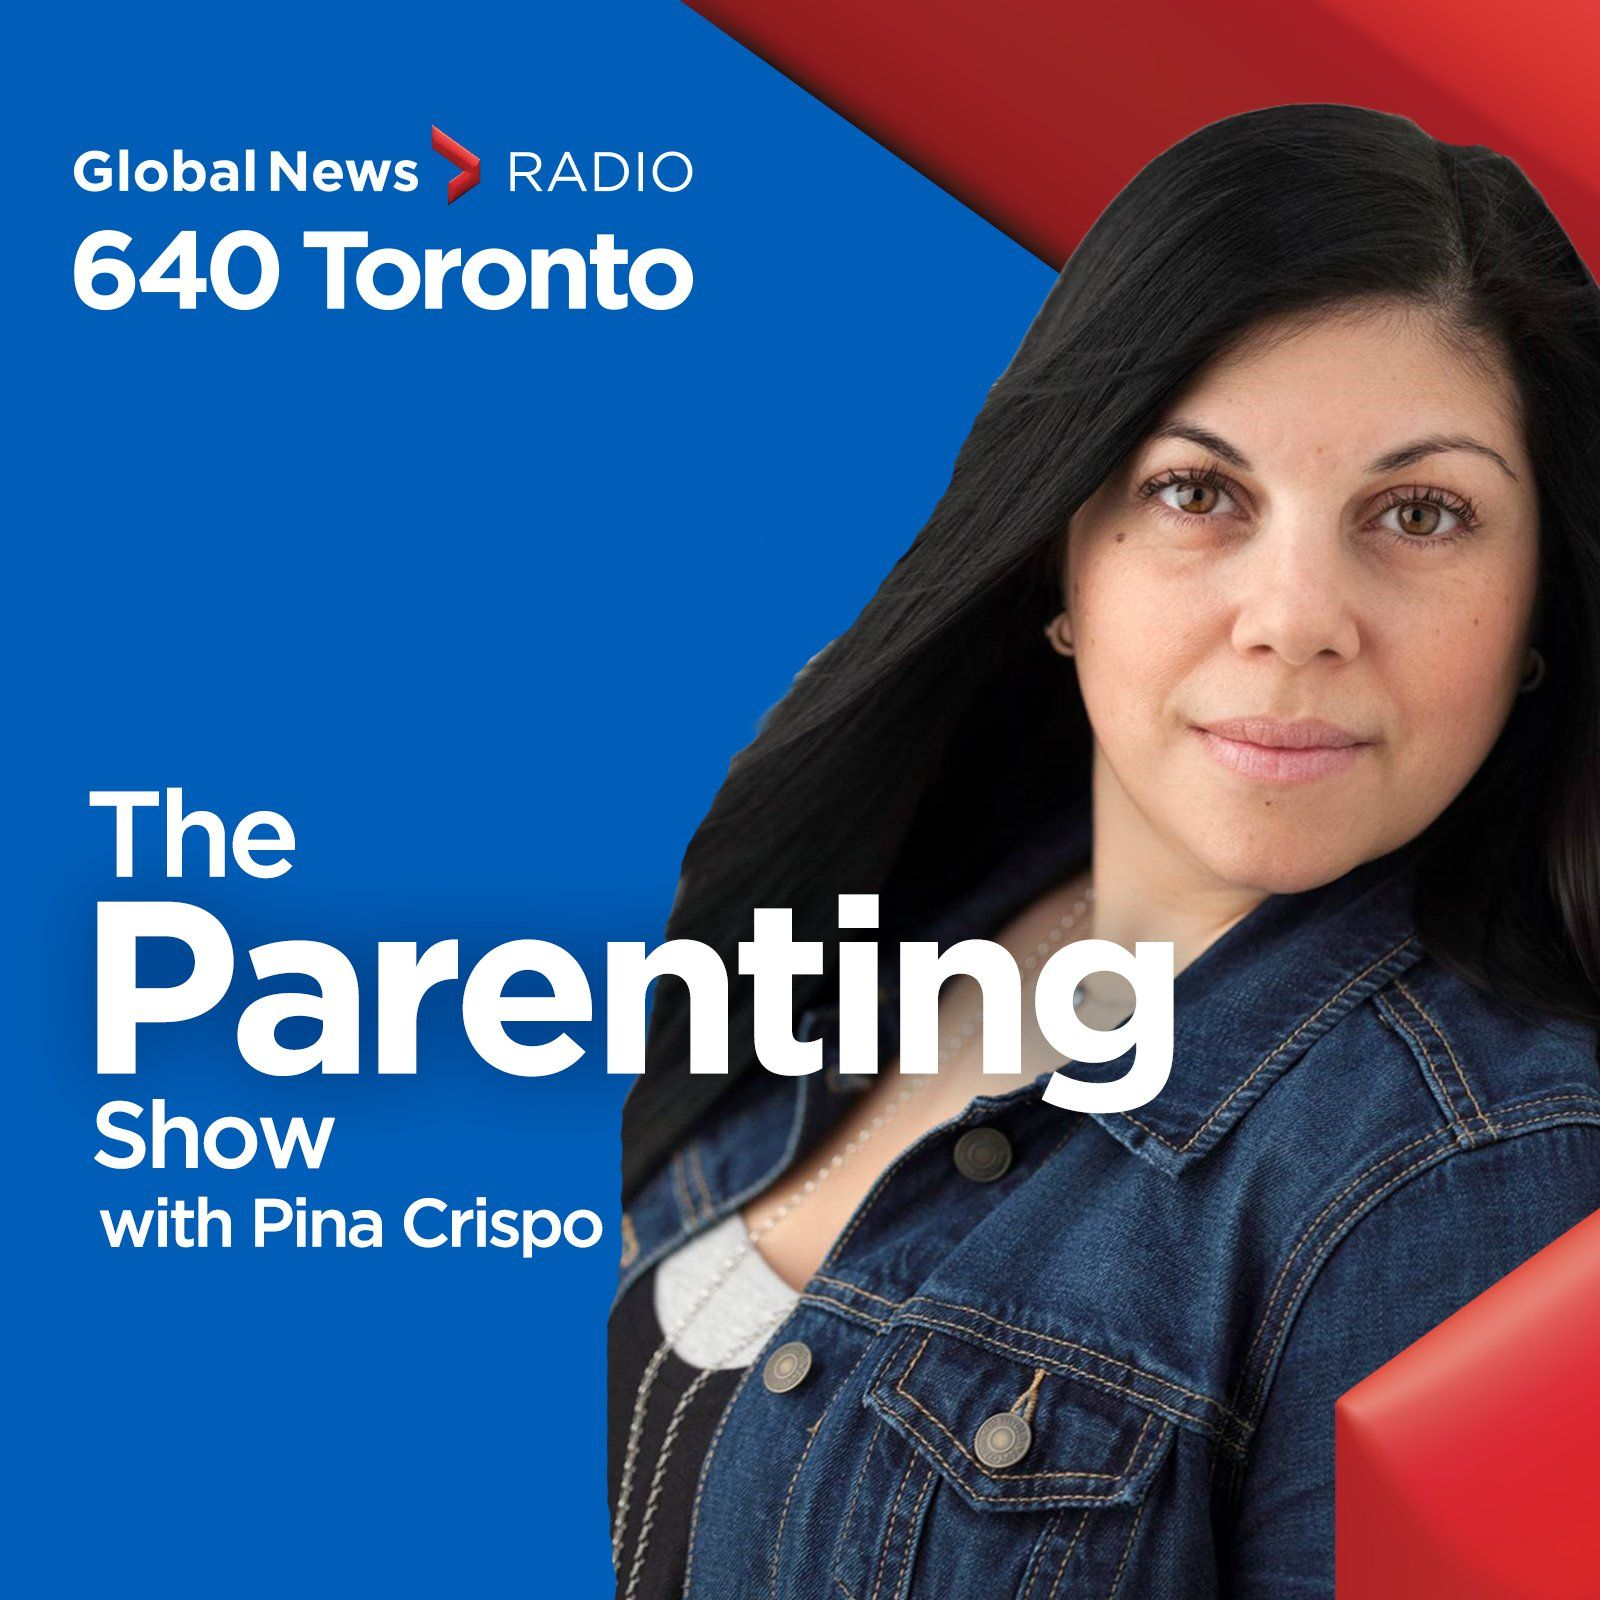 My Appearance on The Parenting Show